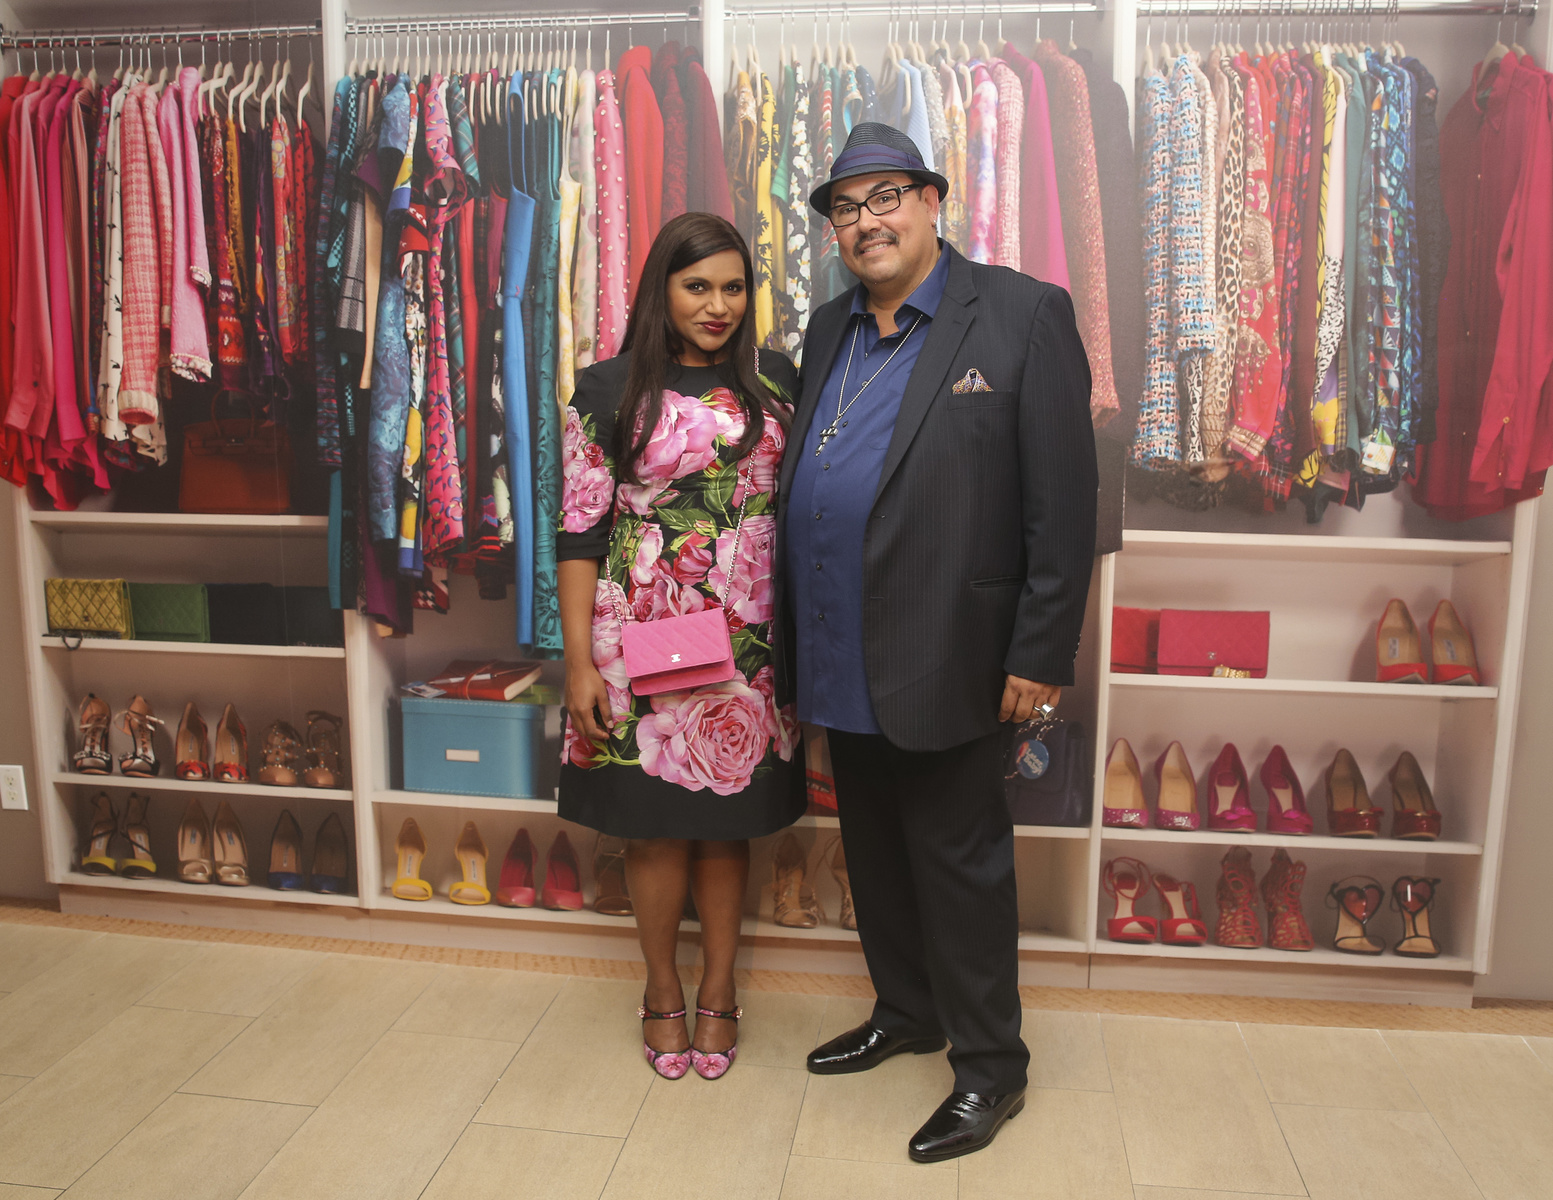 d3d9fdcb4d 'The Mindy Project': step inside Mindy's closet with Paley Center's Costume  Exhibit